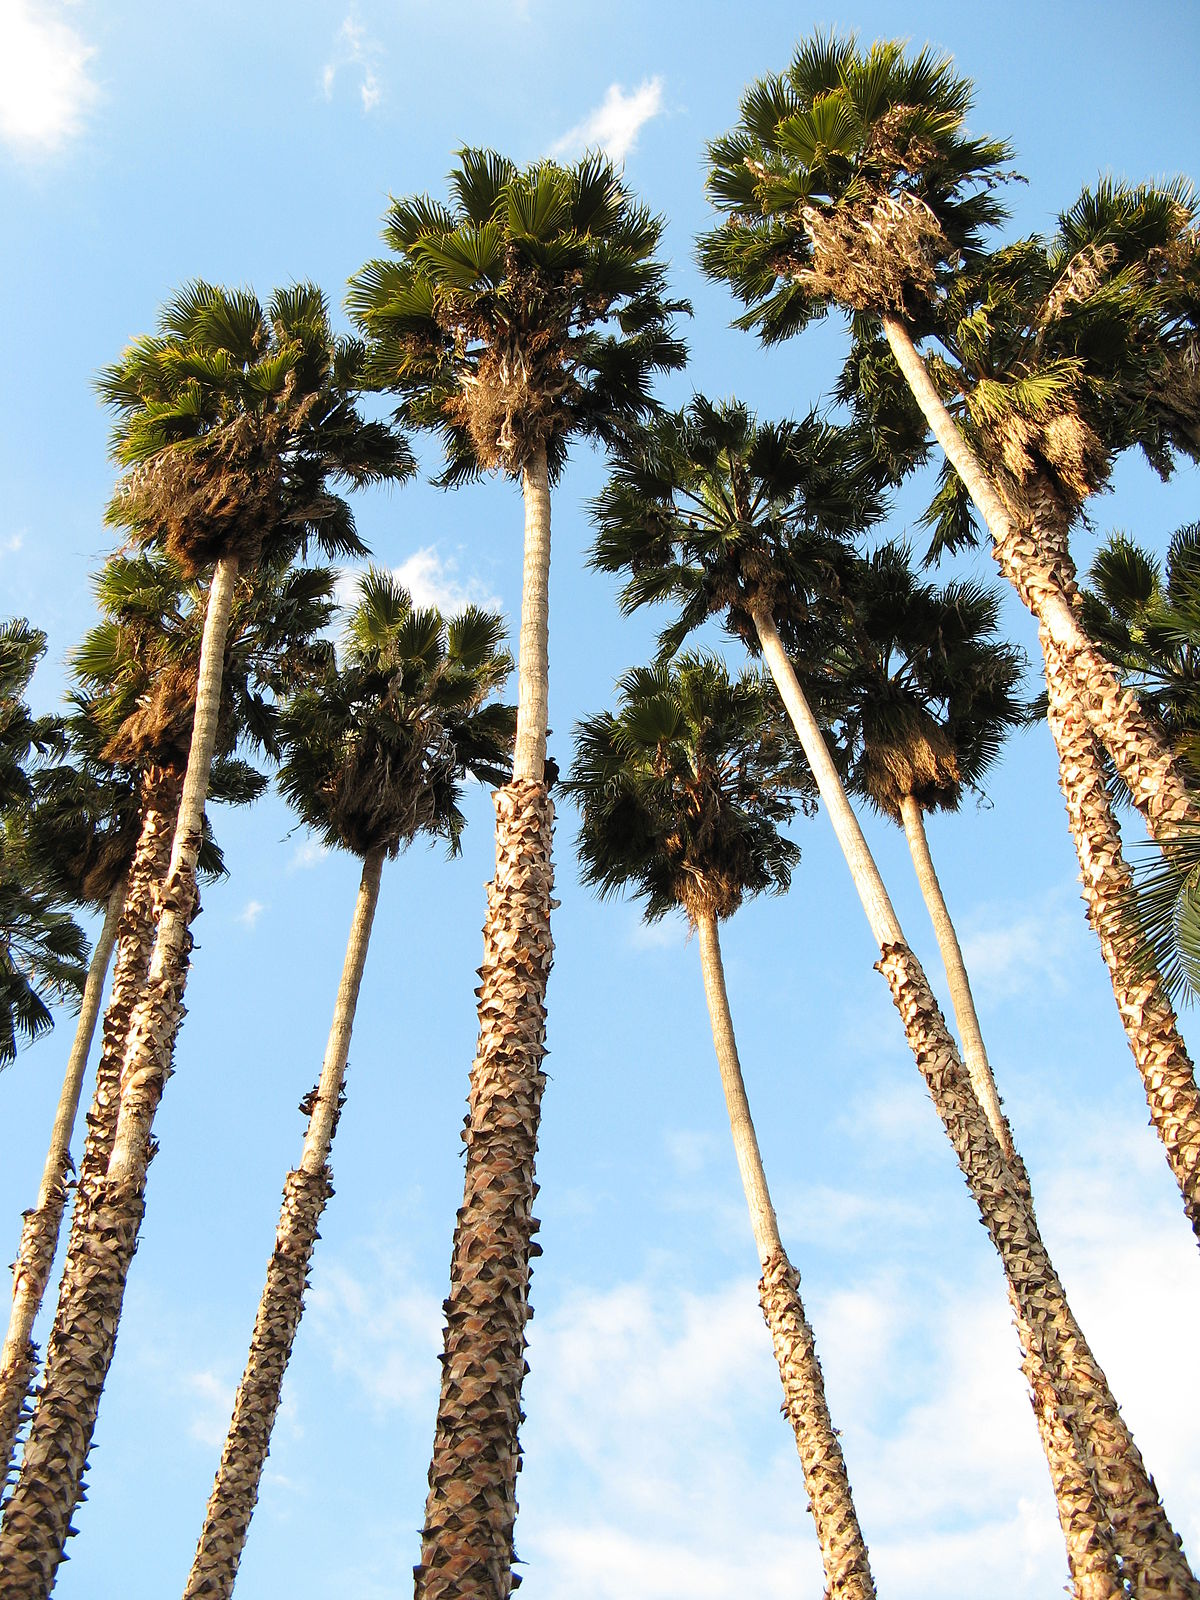 Washingtonia robusta wikipedia - Palmier en 5 lettres ...